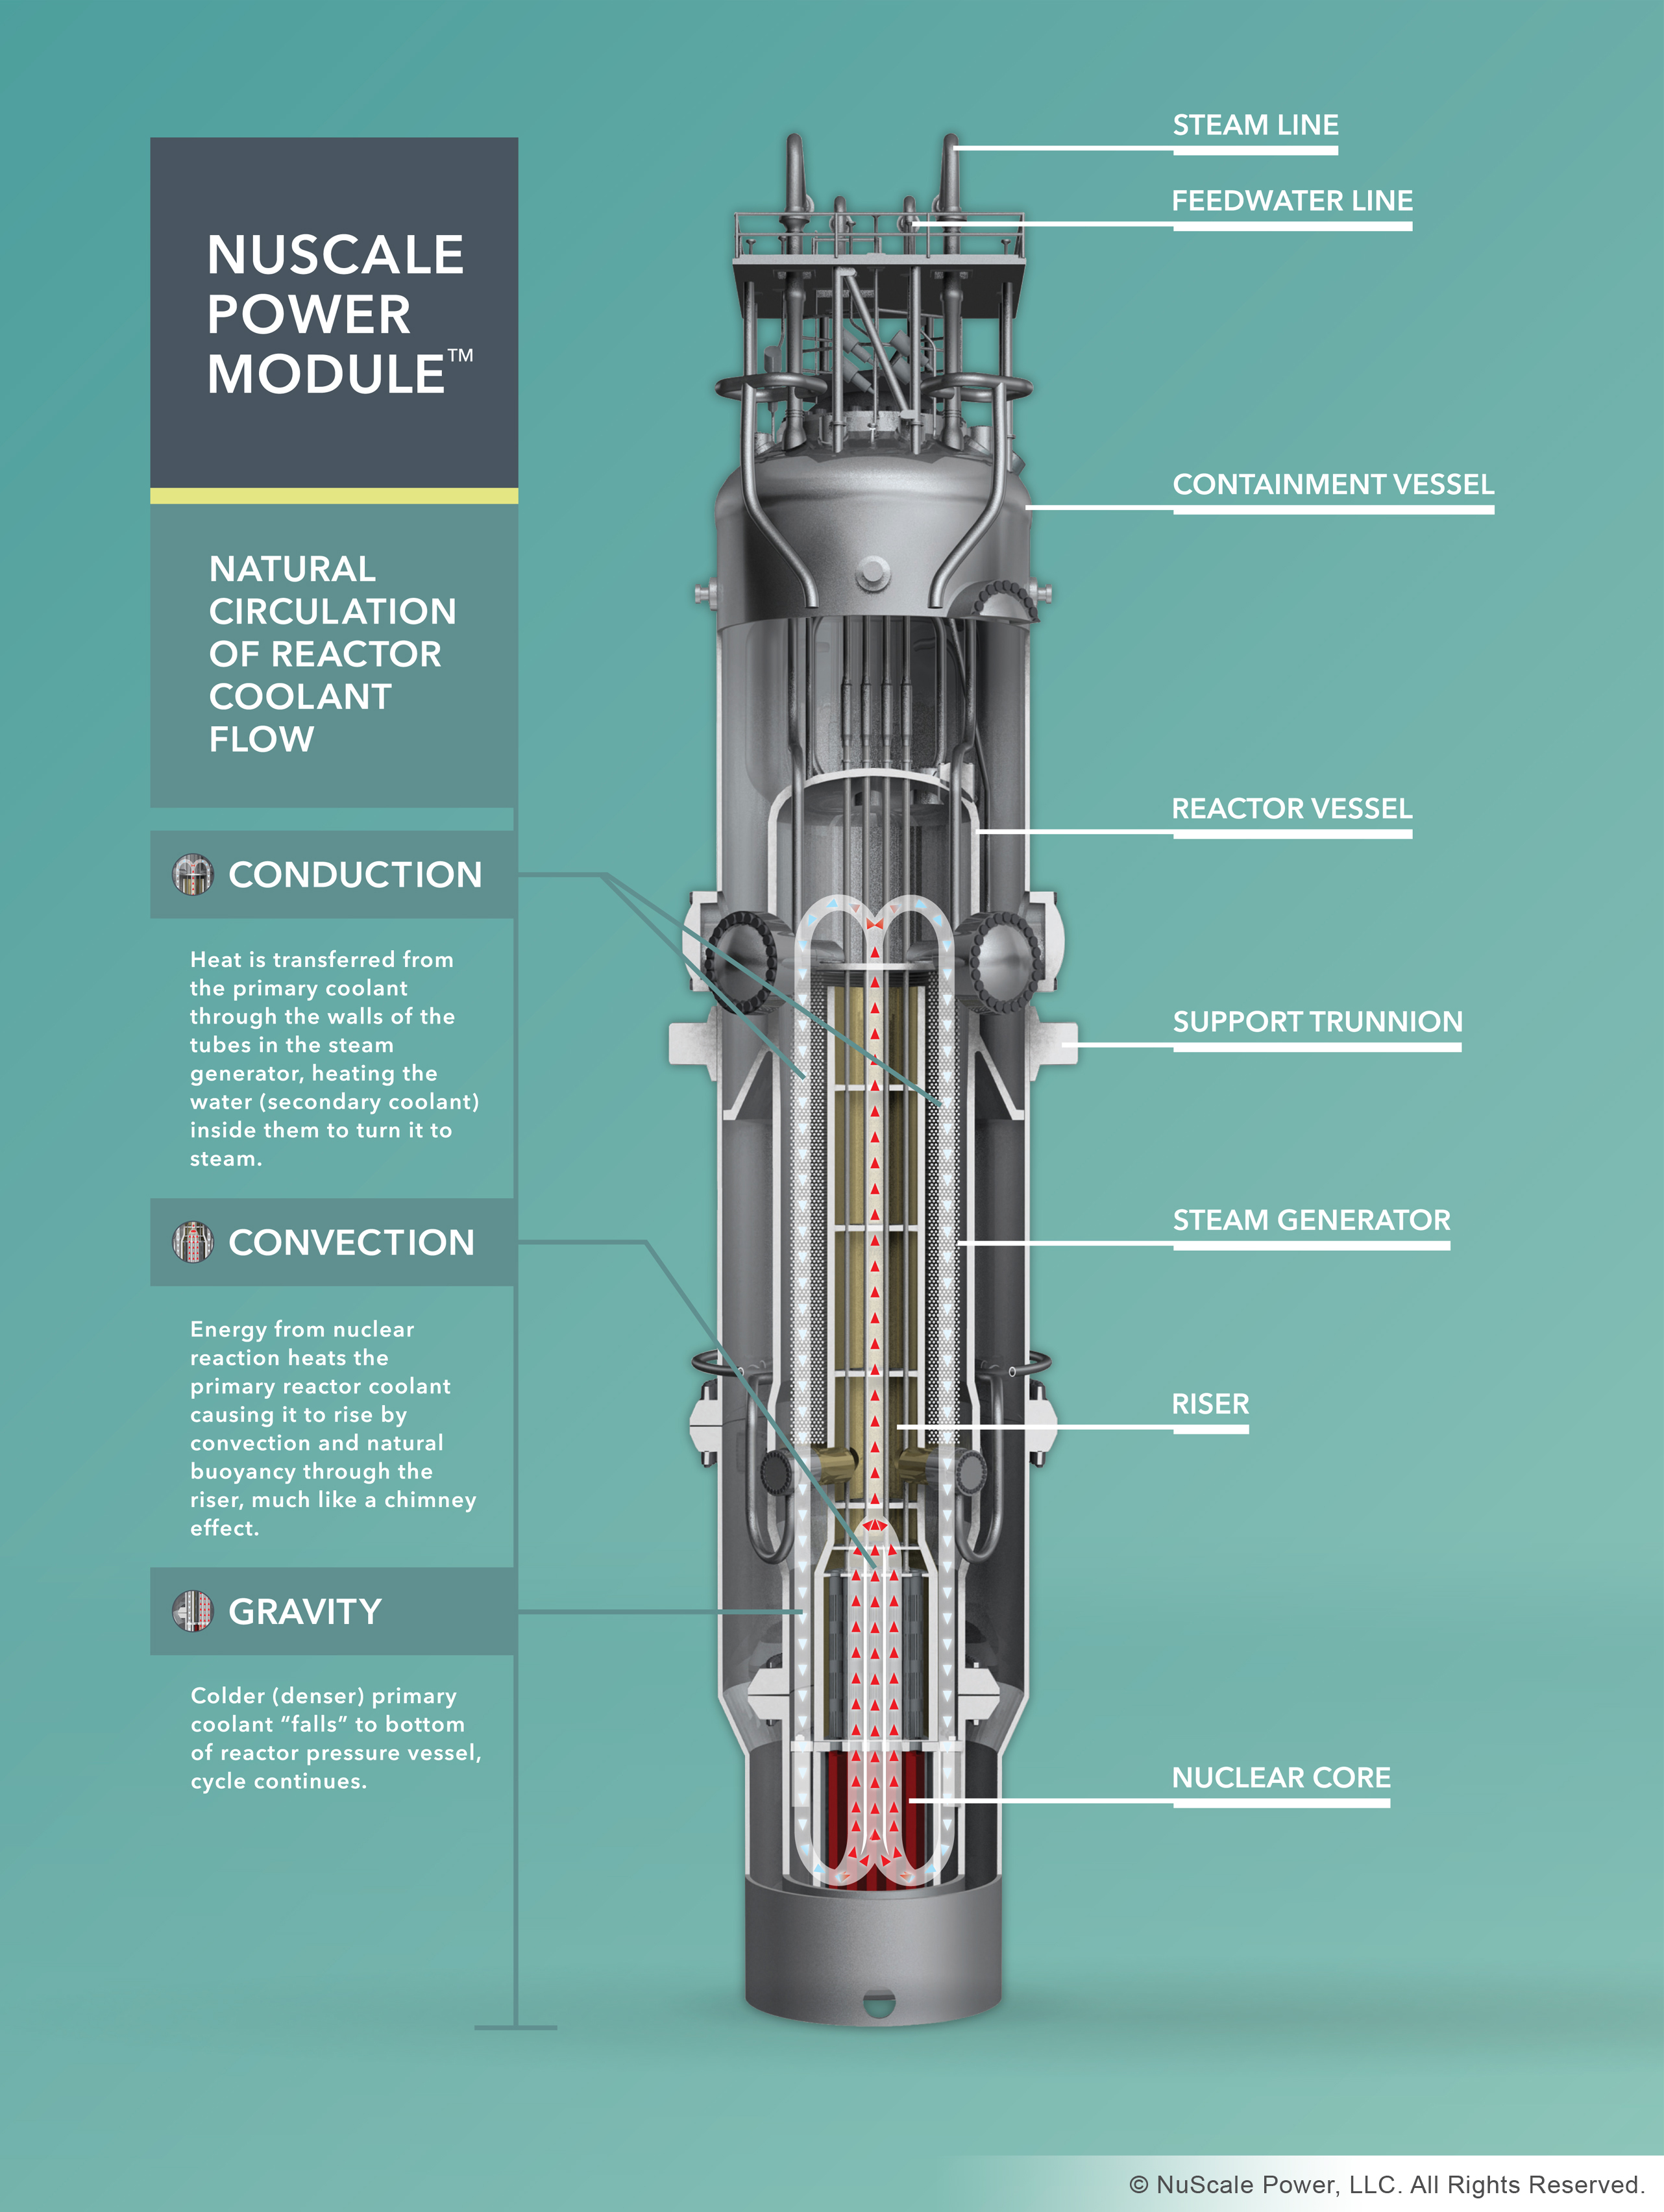 British Study Supports MOX Fuel For NuScale Small Modular Reactors